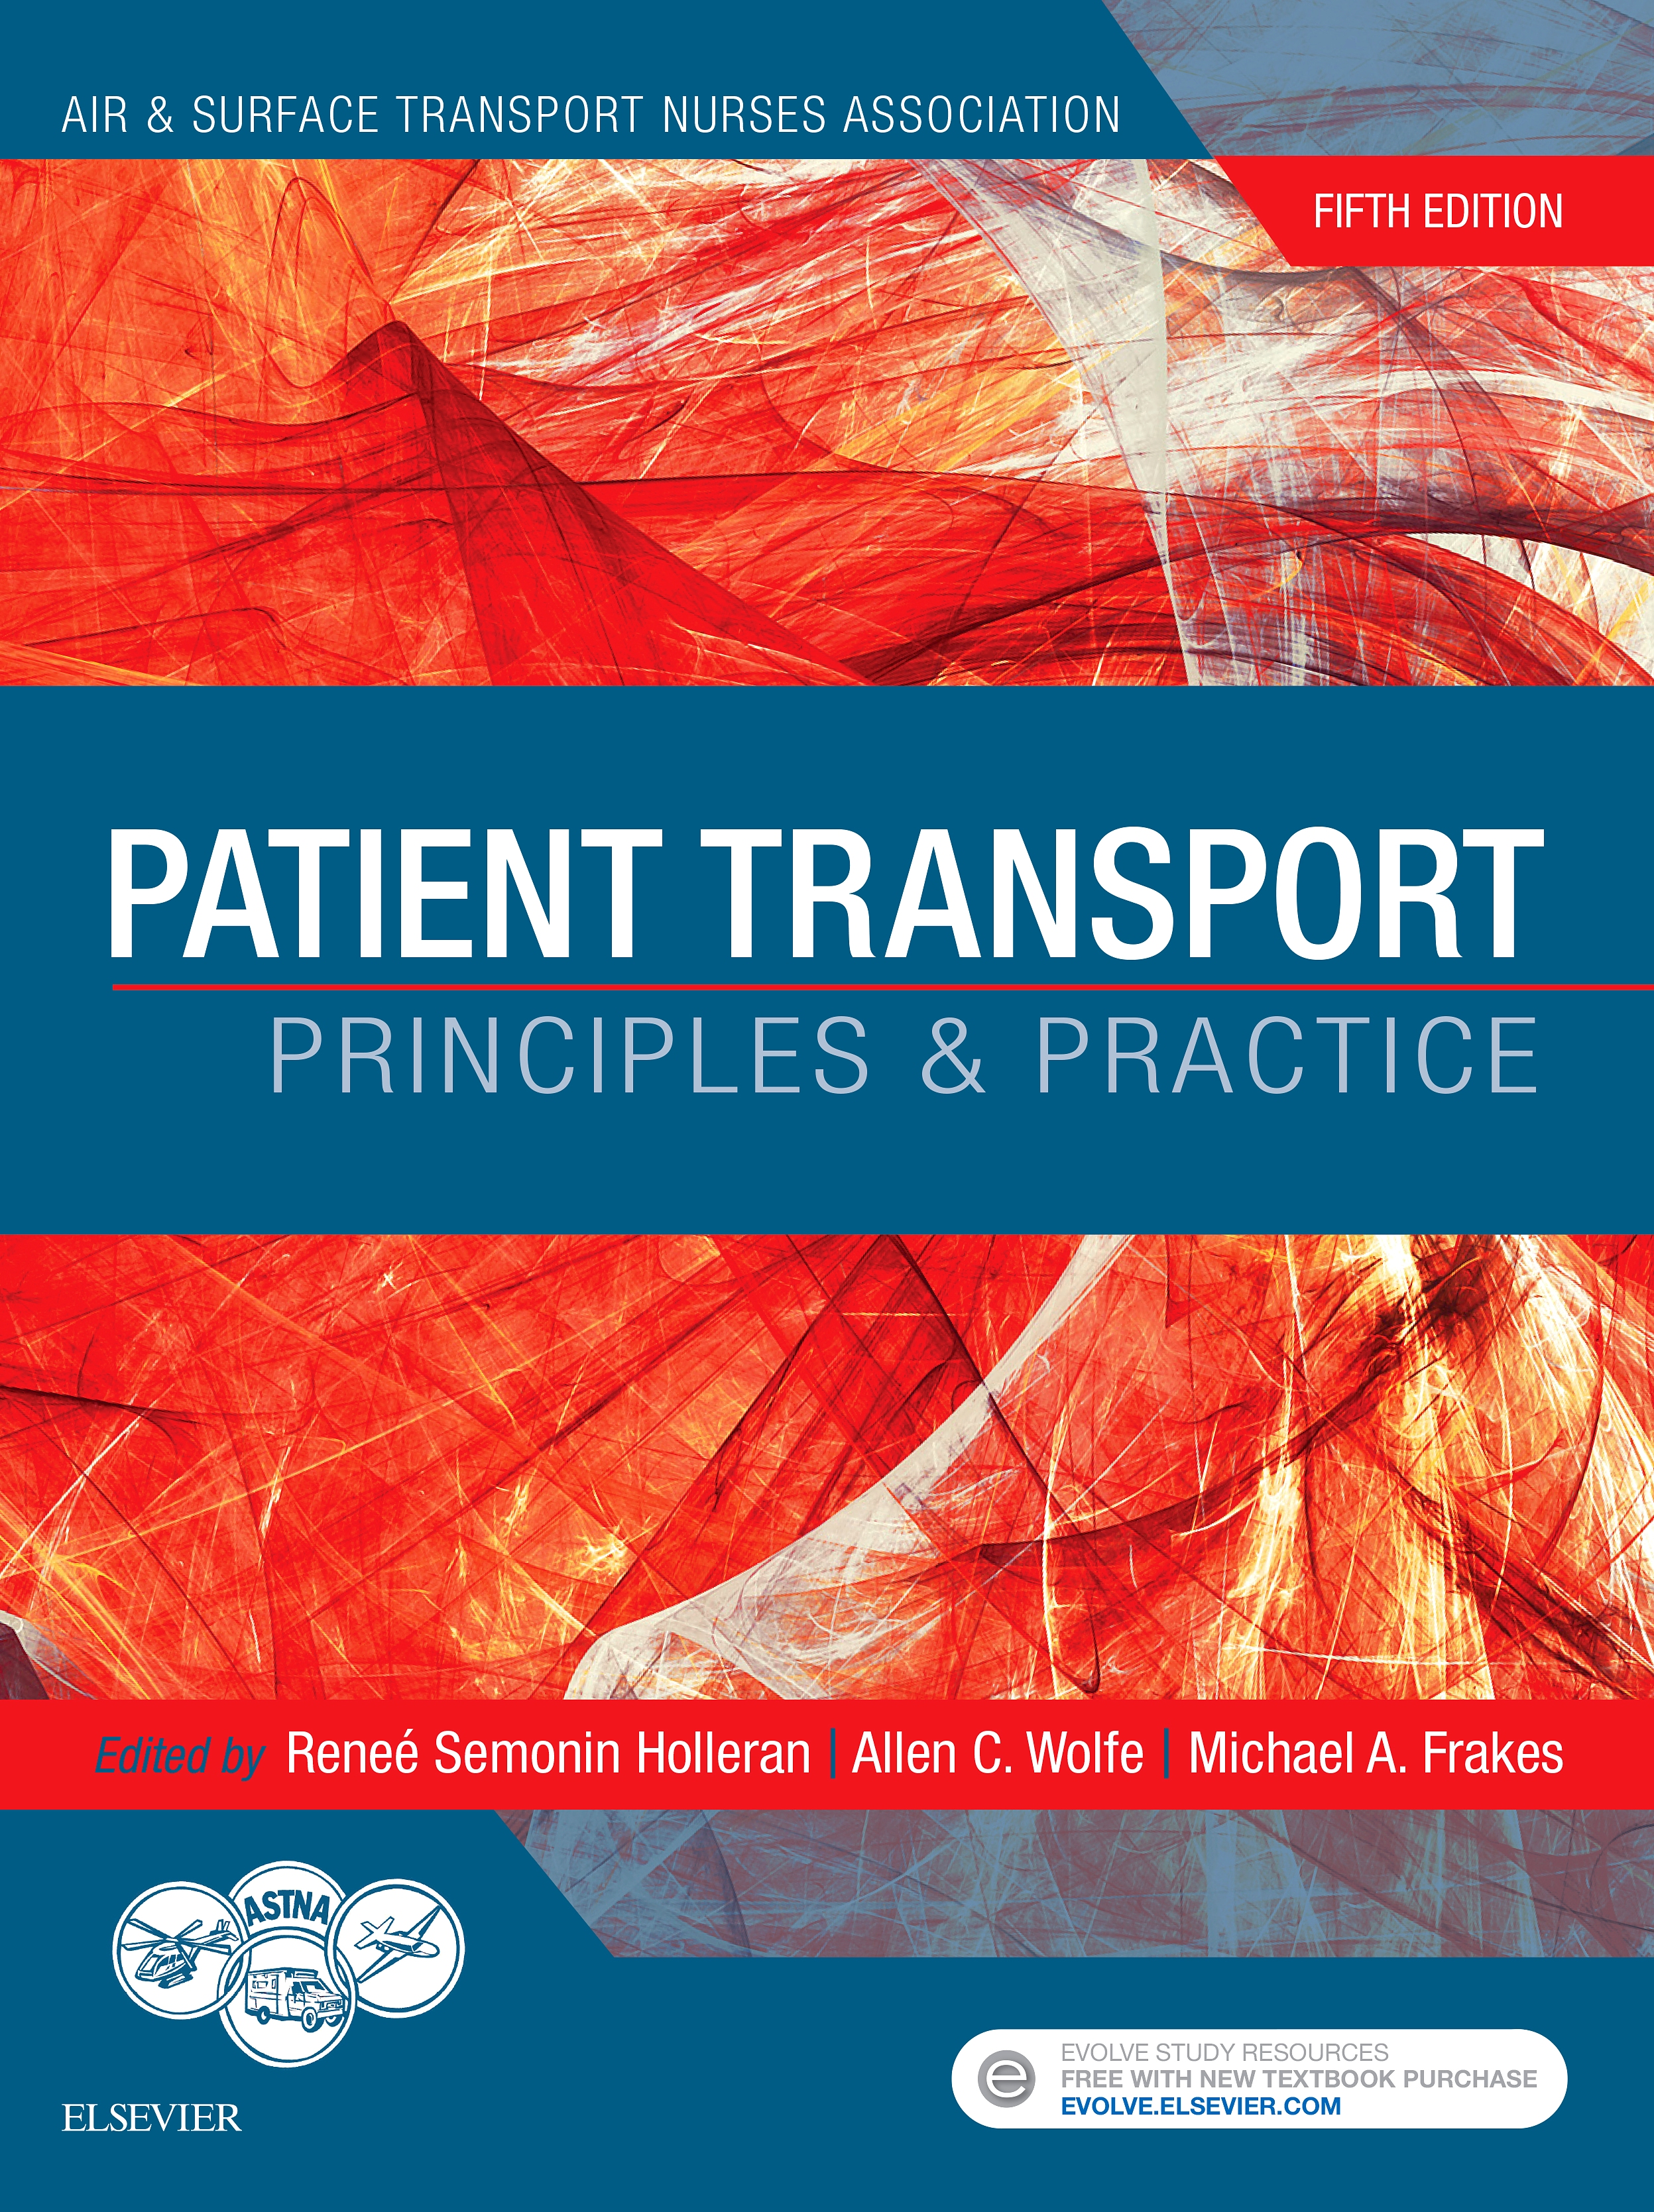 Evolve Resources for Patient Transport, 5th Edition